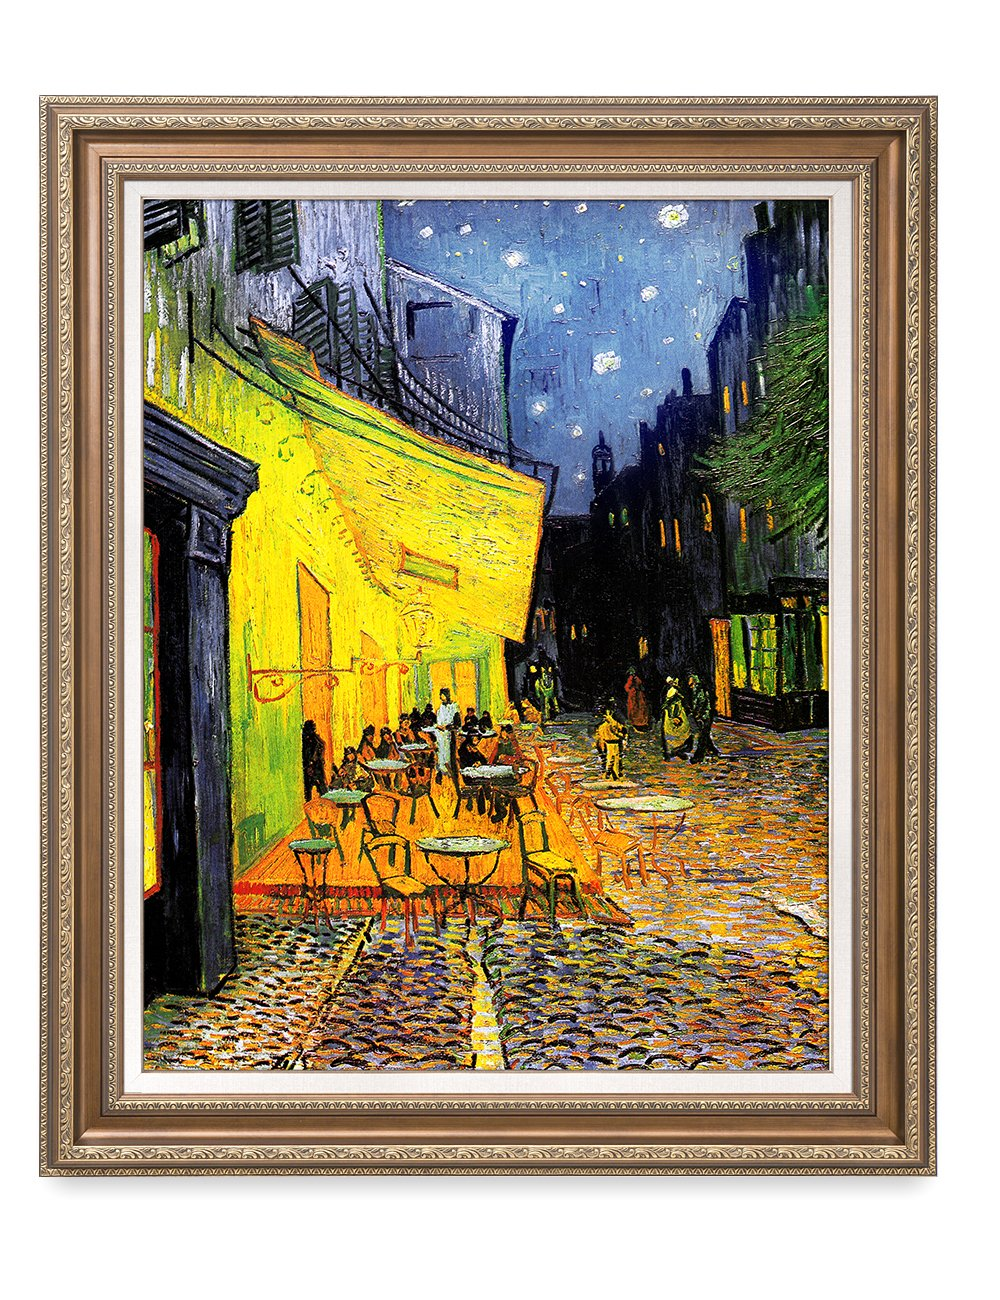 DecorArts - Cafe Terrace At Night, Vincent Van Gogh Art Reproduction. giclee prints Framed Art for Wall Decor. Framed size: 36x30''